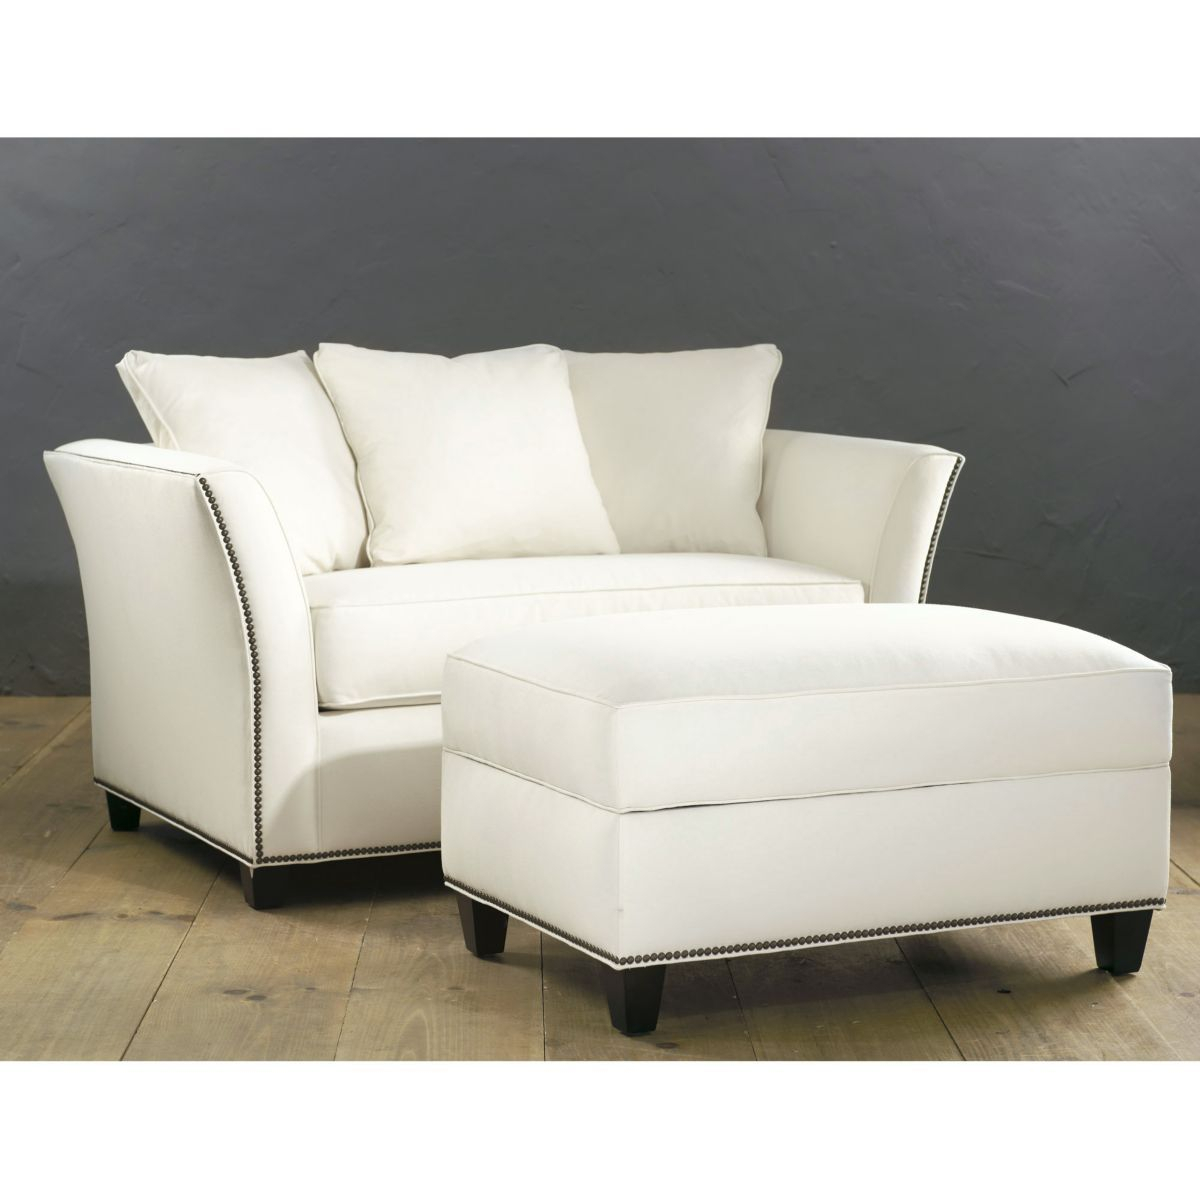 Tate Twin Sleeper With Storage Ottoman In Chippendale Gray | For The Pertaining To Tate Ii Sofa Chairs (View 6 of 20)